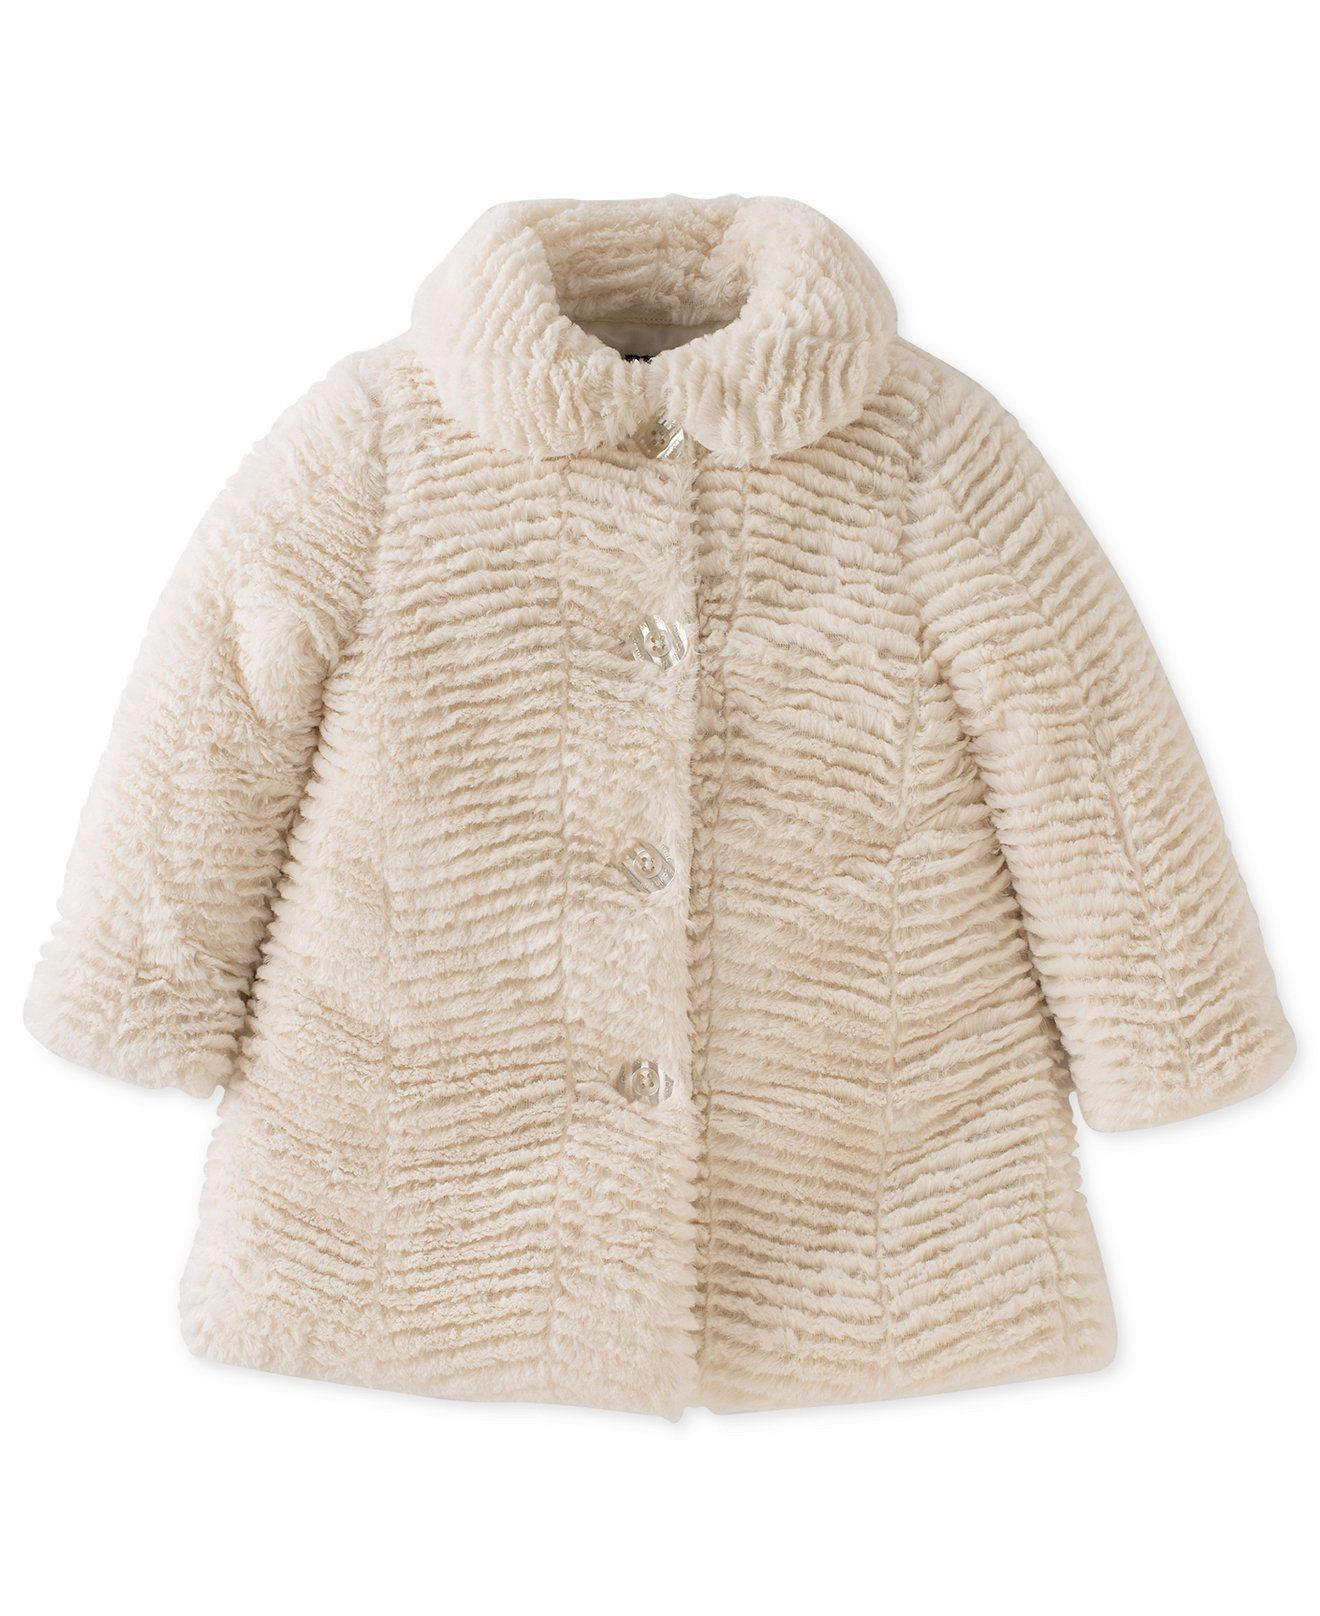 8965da1bb12d Calvin Klein Baby Girls  Faux-Fur Coat - Baby Girl (0-24 months) - Kids    Baby - Macy s